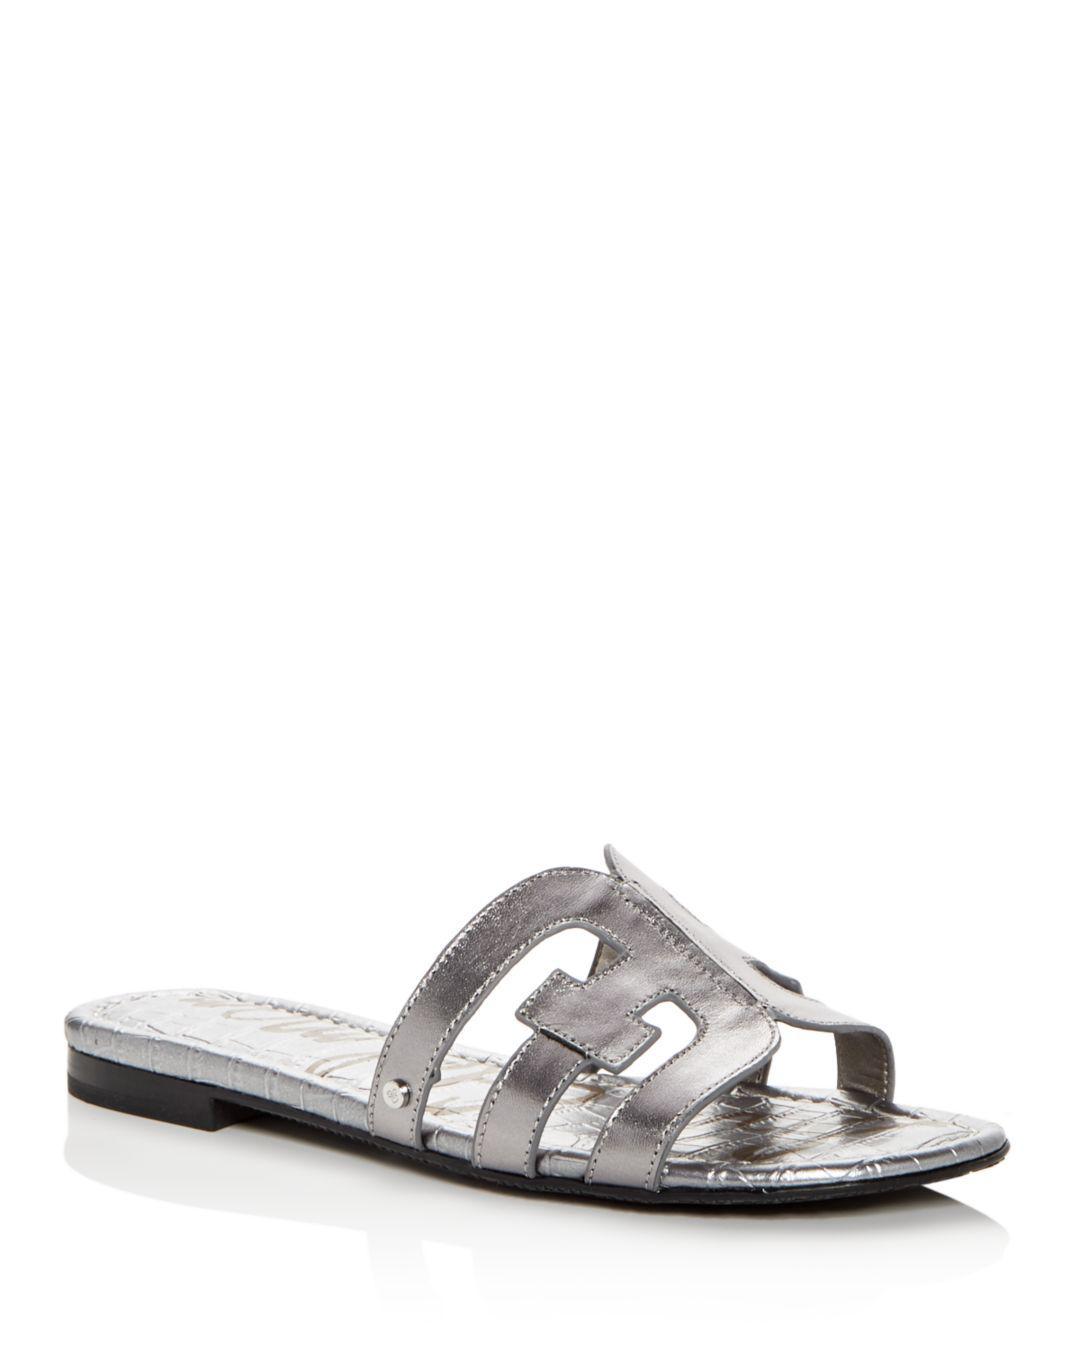 b0c774f2a Lyst - Sam Edelman Women s Bay Leather Slide Sandals